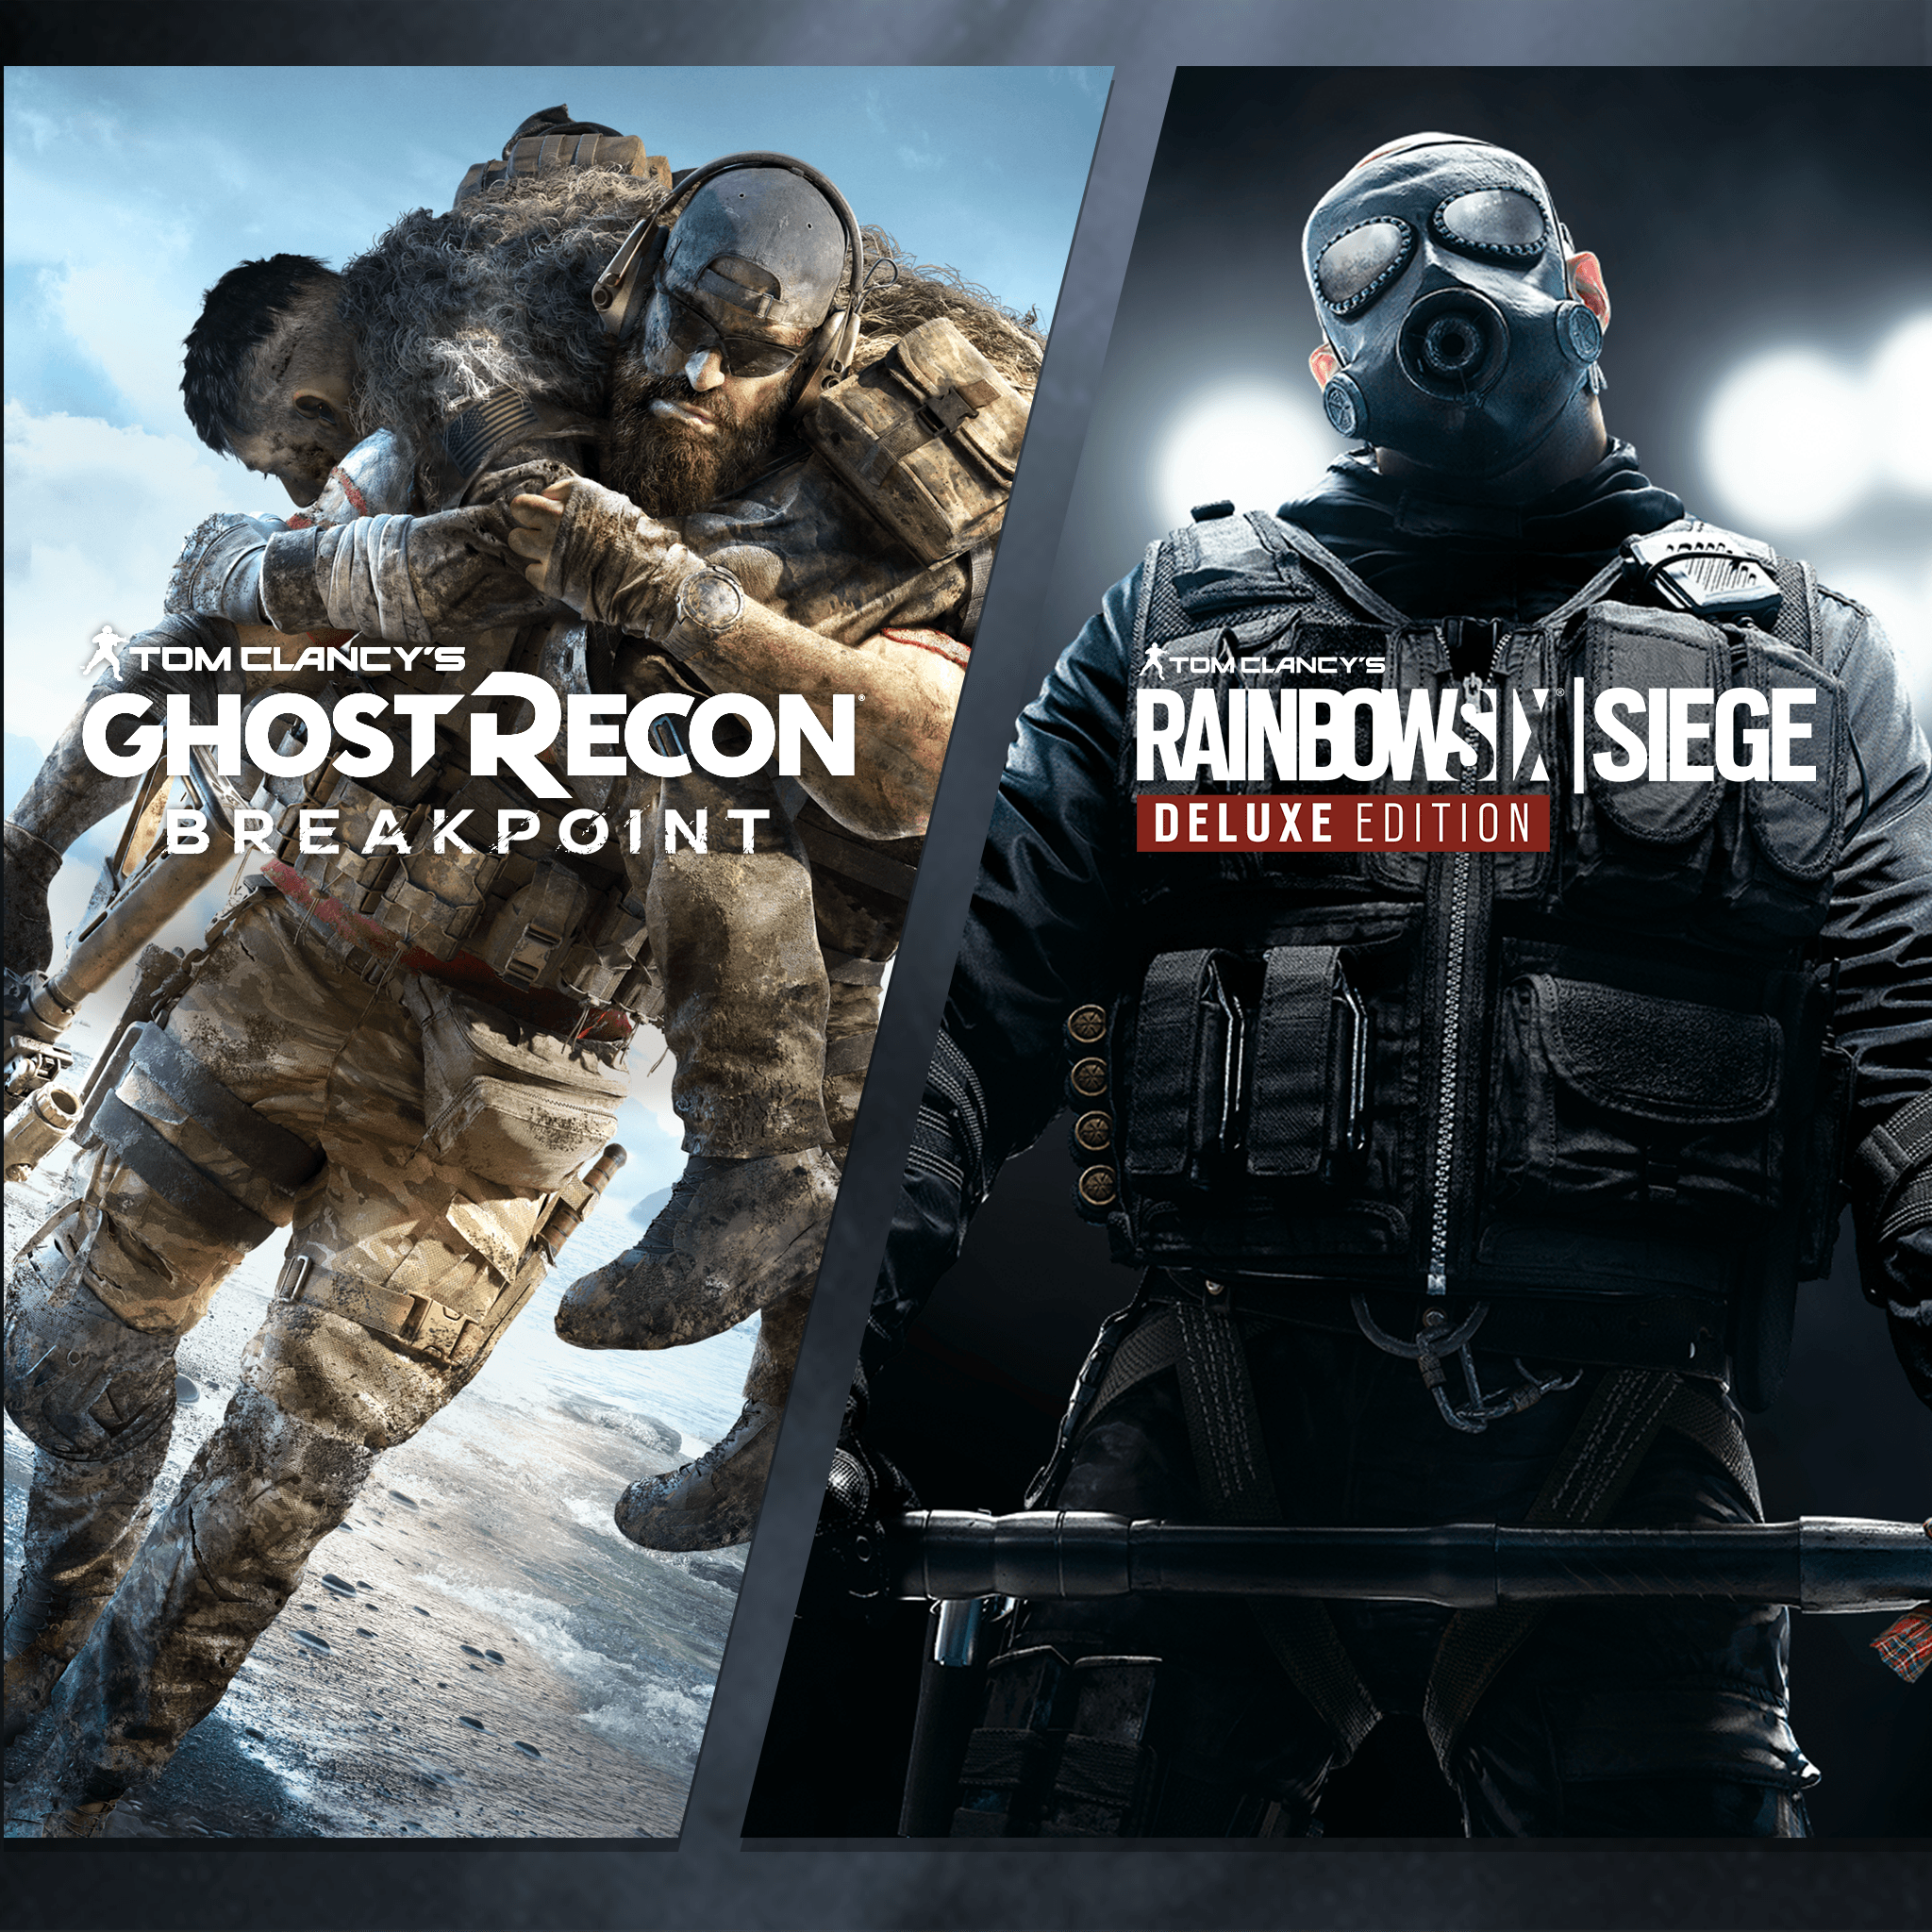 Rainbow Six Siege & Ghost Recon Breakpoint Bundle